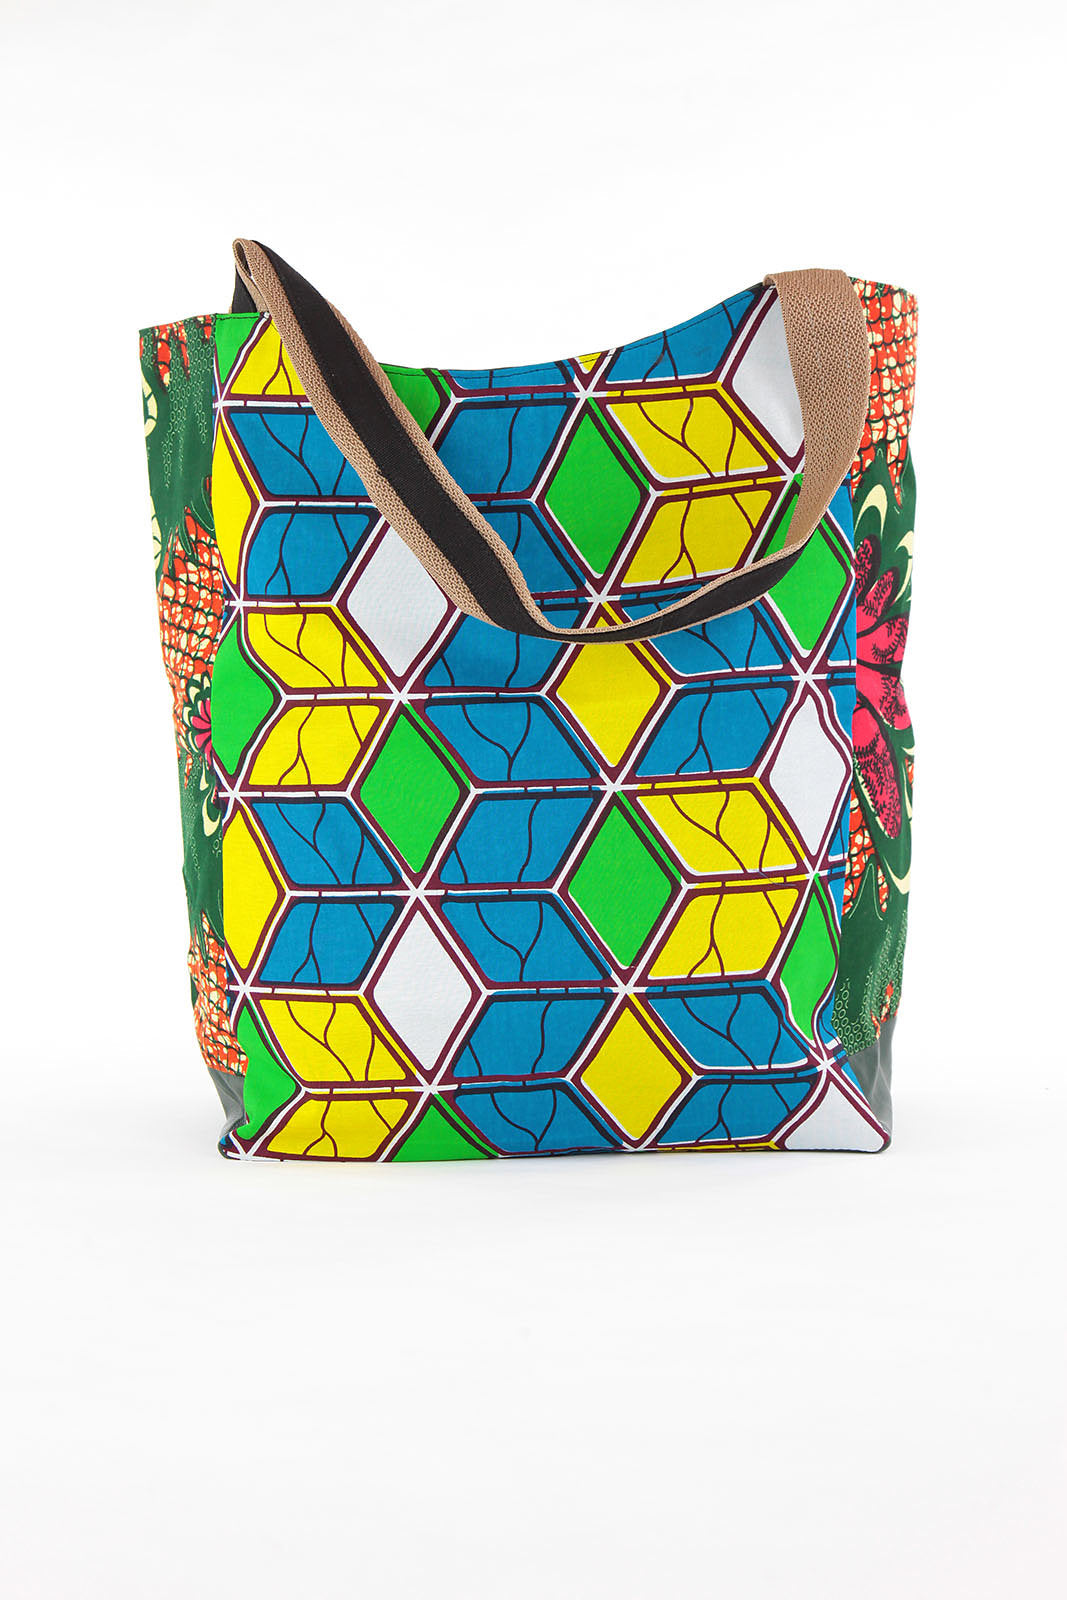 African Print Shopper Bag-Teal/Yellow Geometric Print - Africas Closet